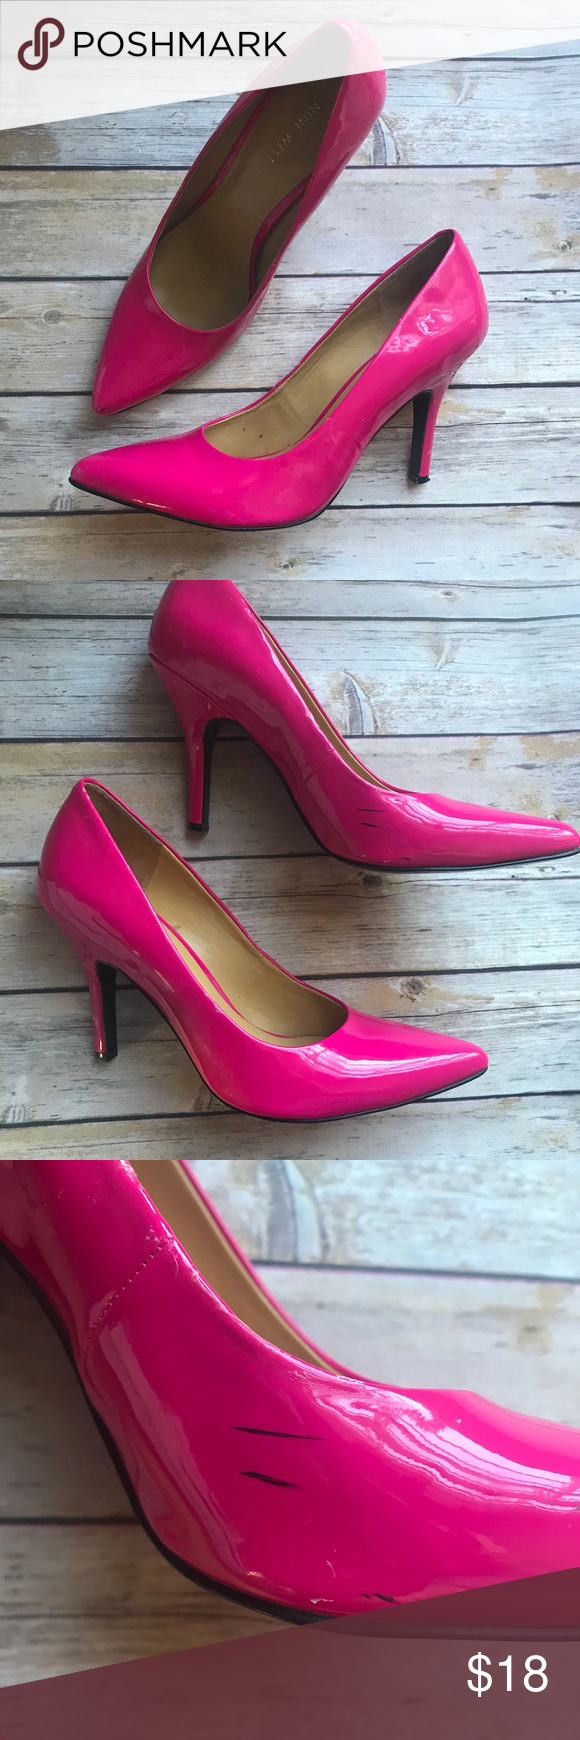 8701d4cc2 Nine West hot pink shiny pointed toe pumps Some scuffs and peeling, as  shown in picture, but in good wearable condition otherwise. No box. Nine  West Shoes ...